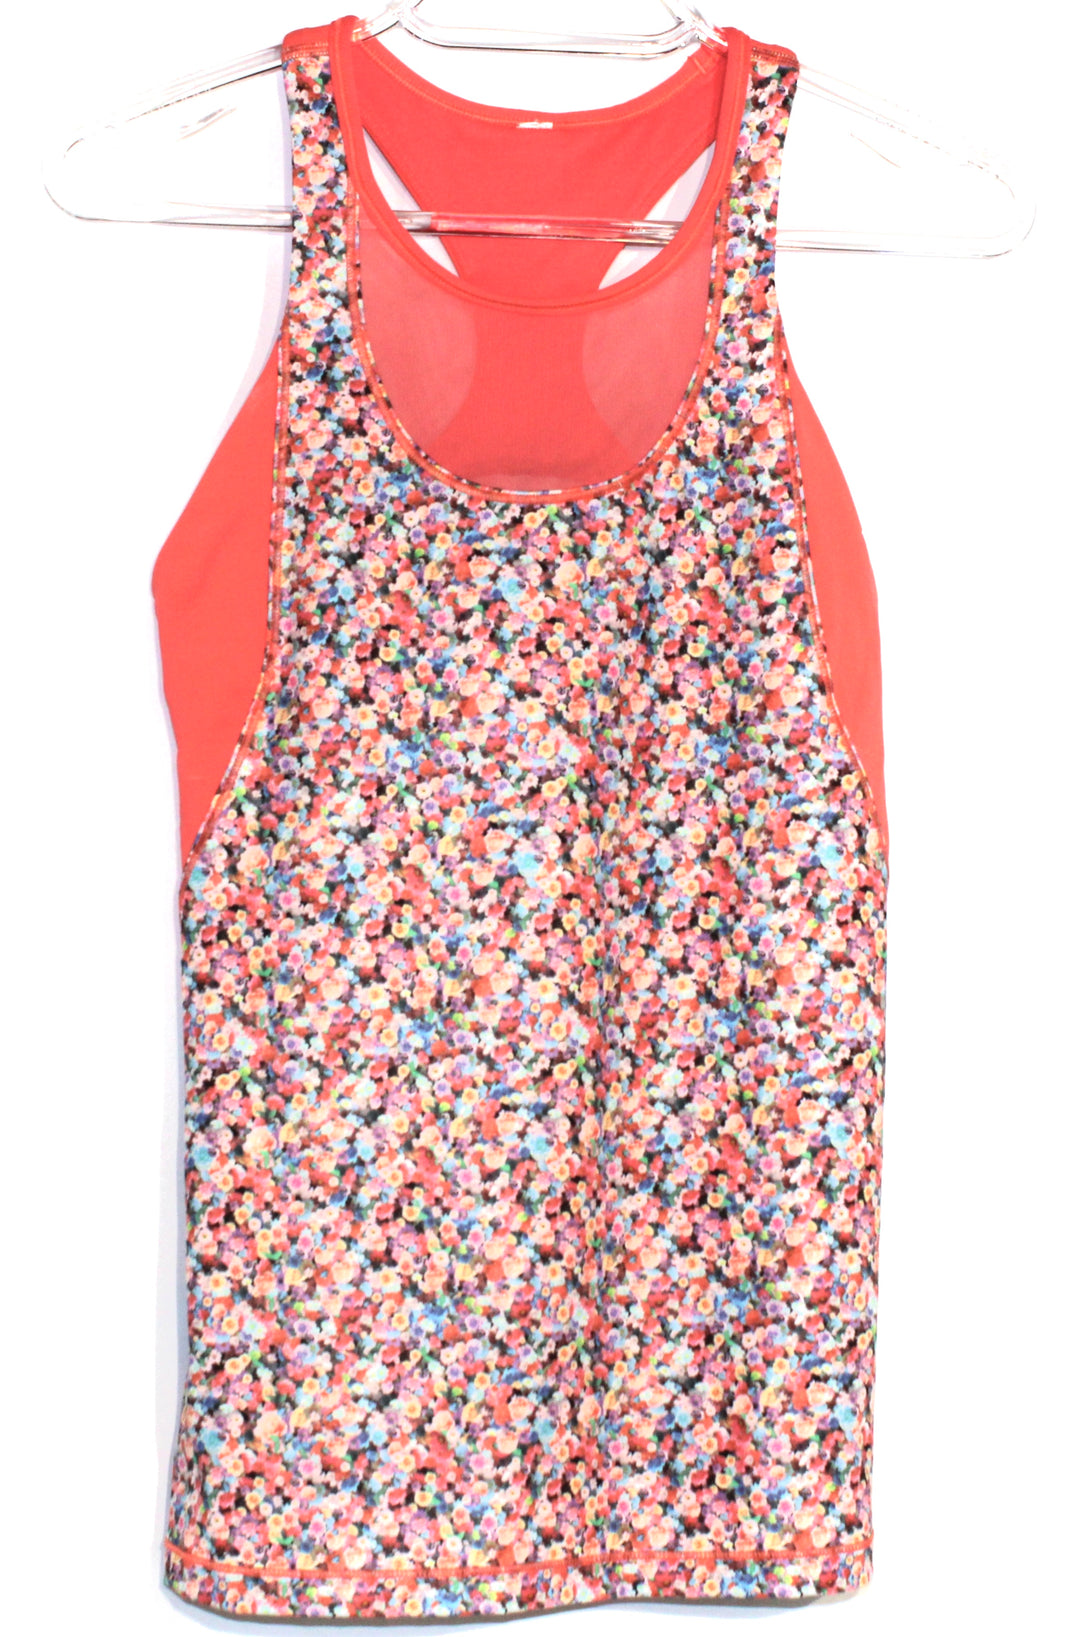 Primary Photo - BRAND: LULULEMON <BR>STYLE: ATHLETIC TANK TOP <BR>COLOR: FLORAL <BR>SIZE: 4 <BR>SKU: 262-26275-62337<BR><BR>DESIGNER FINAL